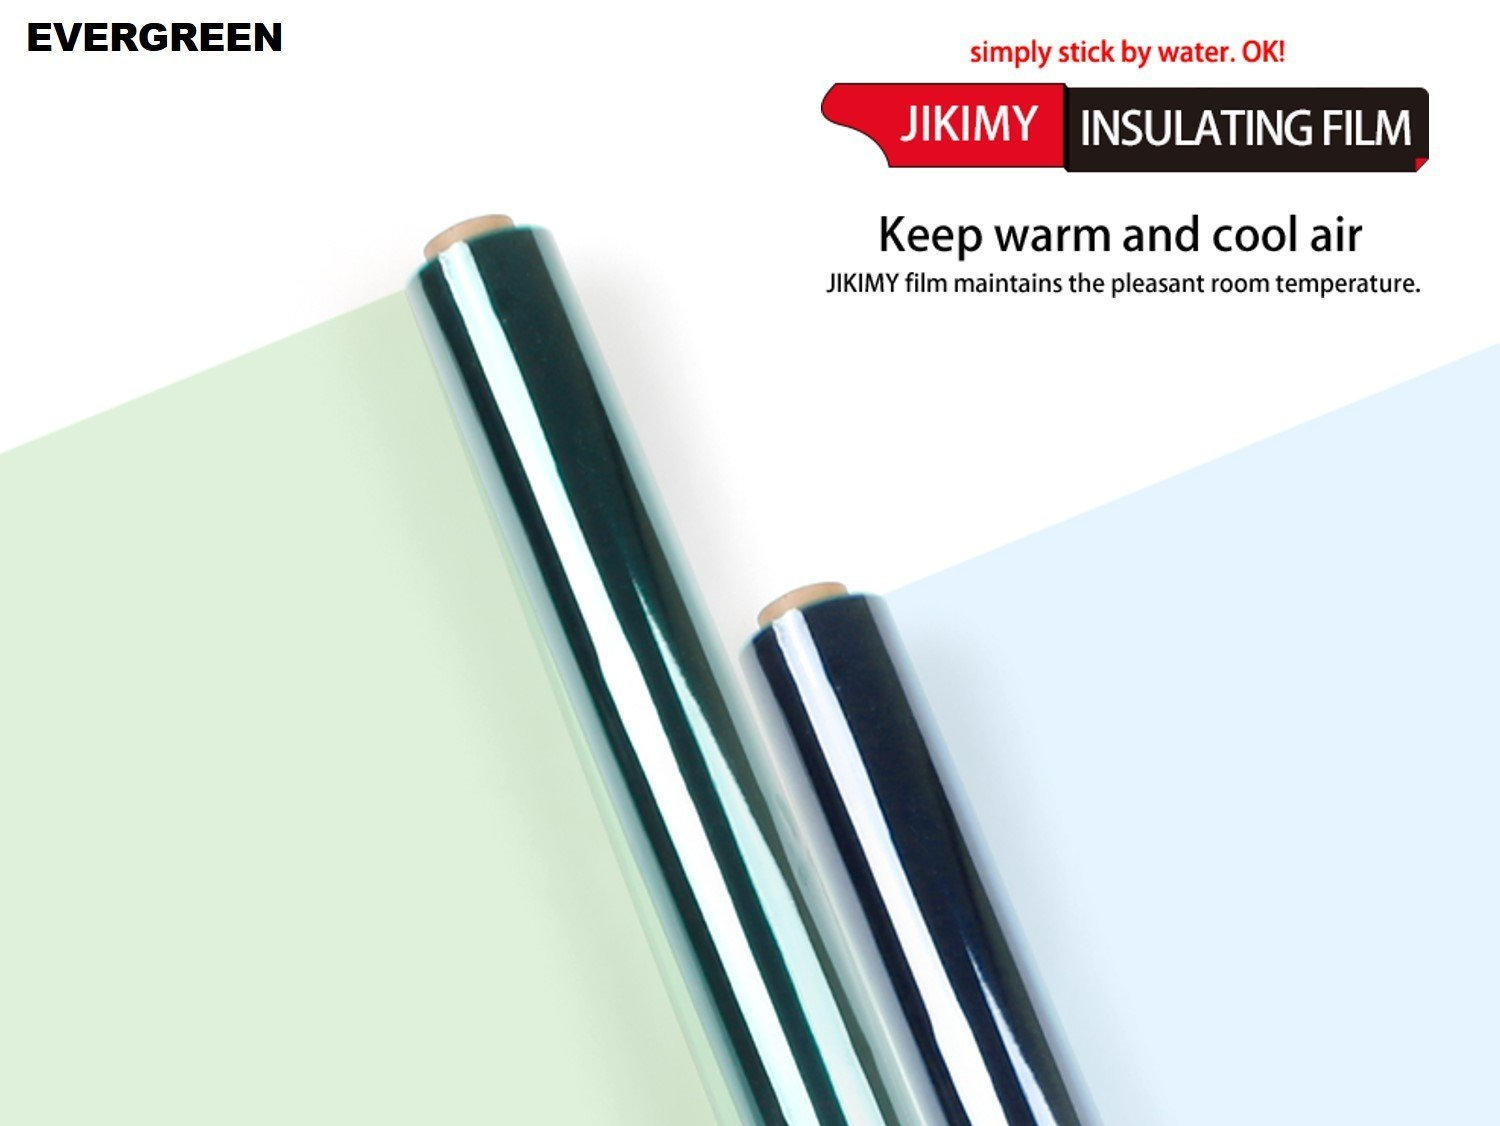 JIKIMY Insulating Film - Reusable Transparent Window Insulator for Heat Control in Four Seasnos, No Adhesive, Only Using Water, 39.4'' x 196.9''